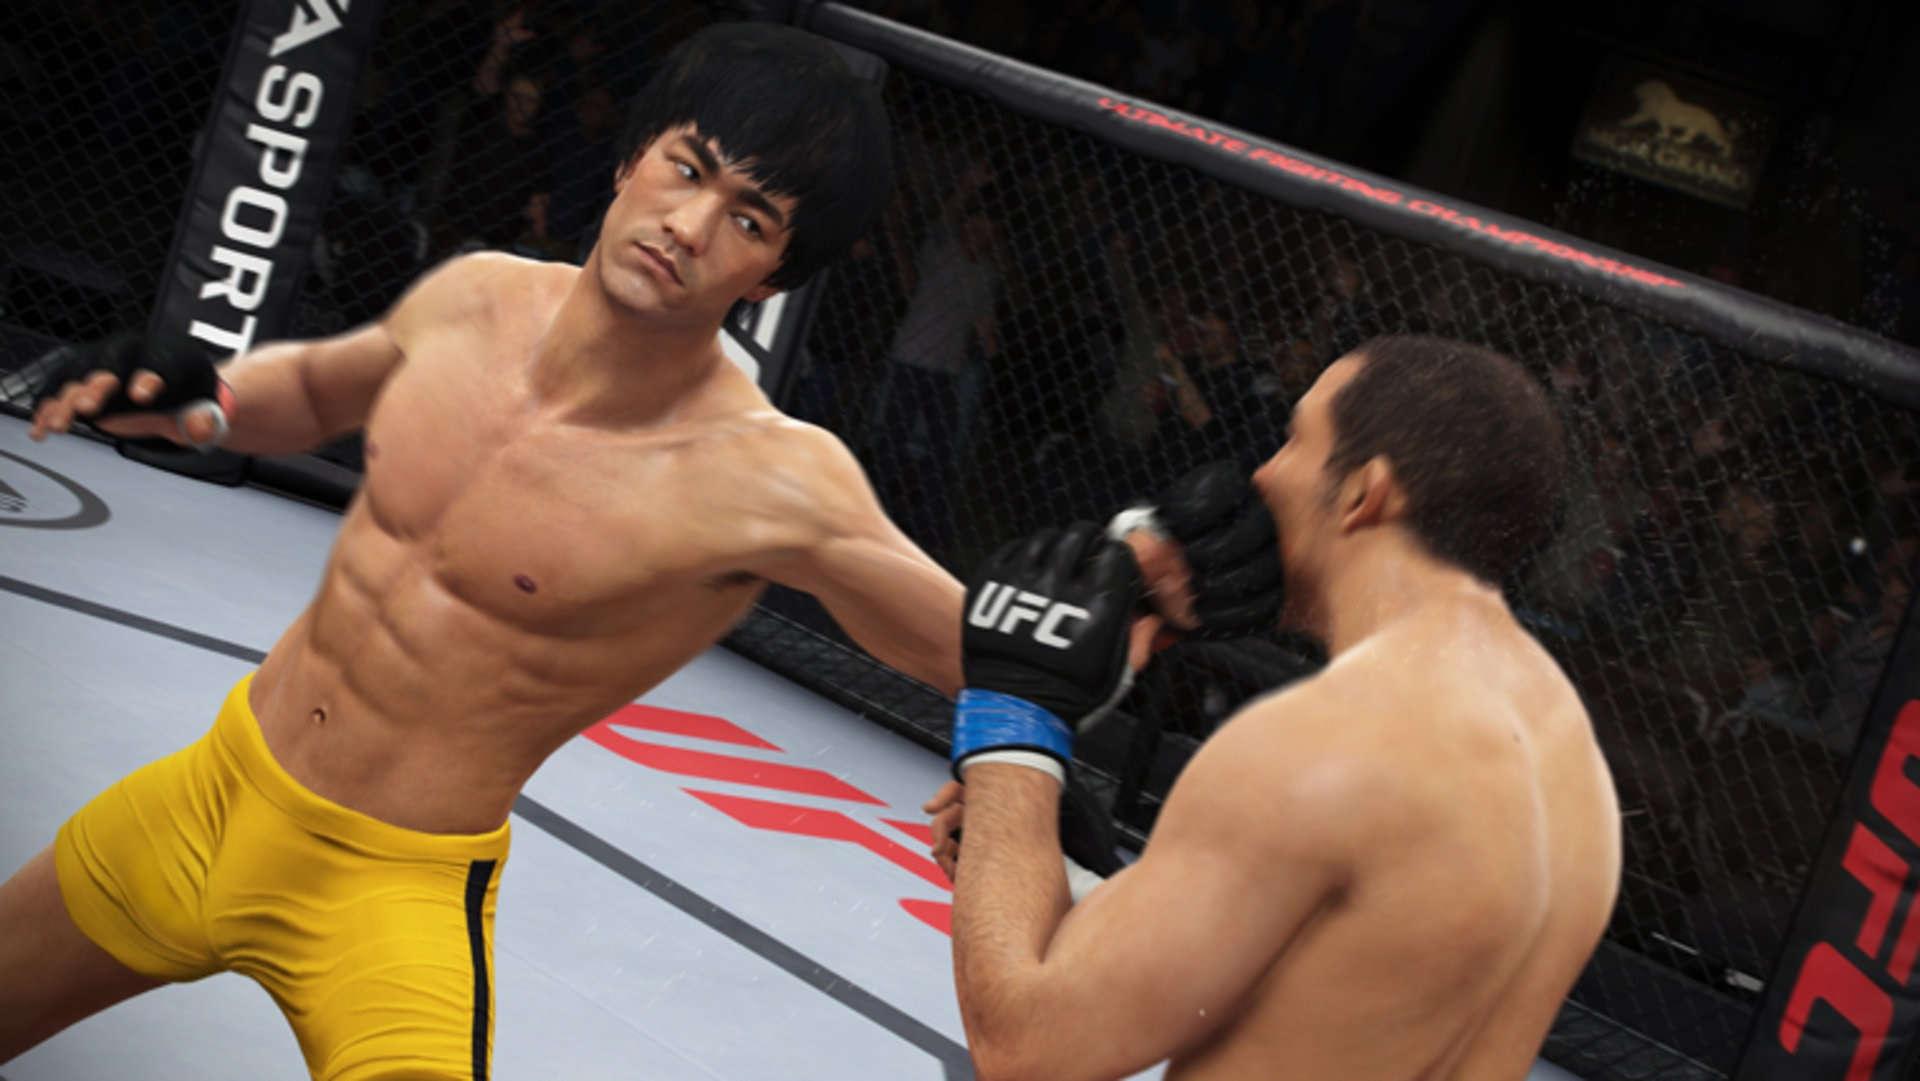 bruce-lee-ufc-peli-1920x1200.jpg - EA Sports UFC